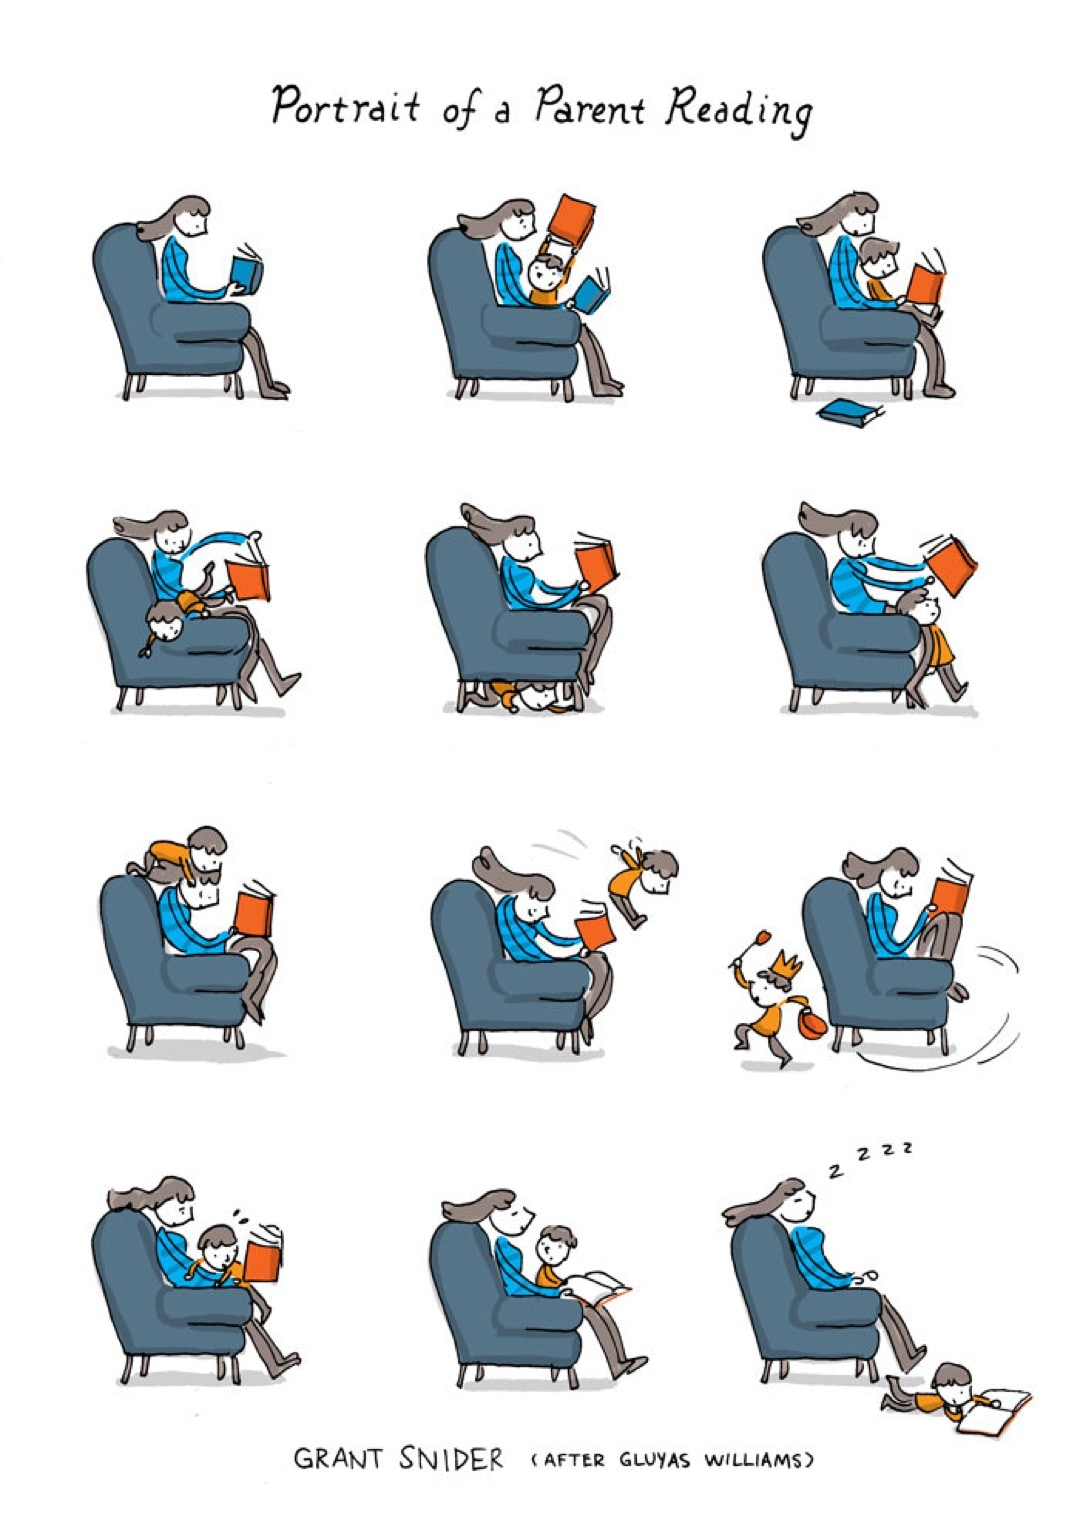 Portrait of a Parent Reading - a cartoon by Grant Snider